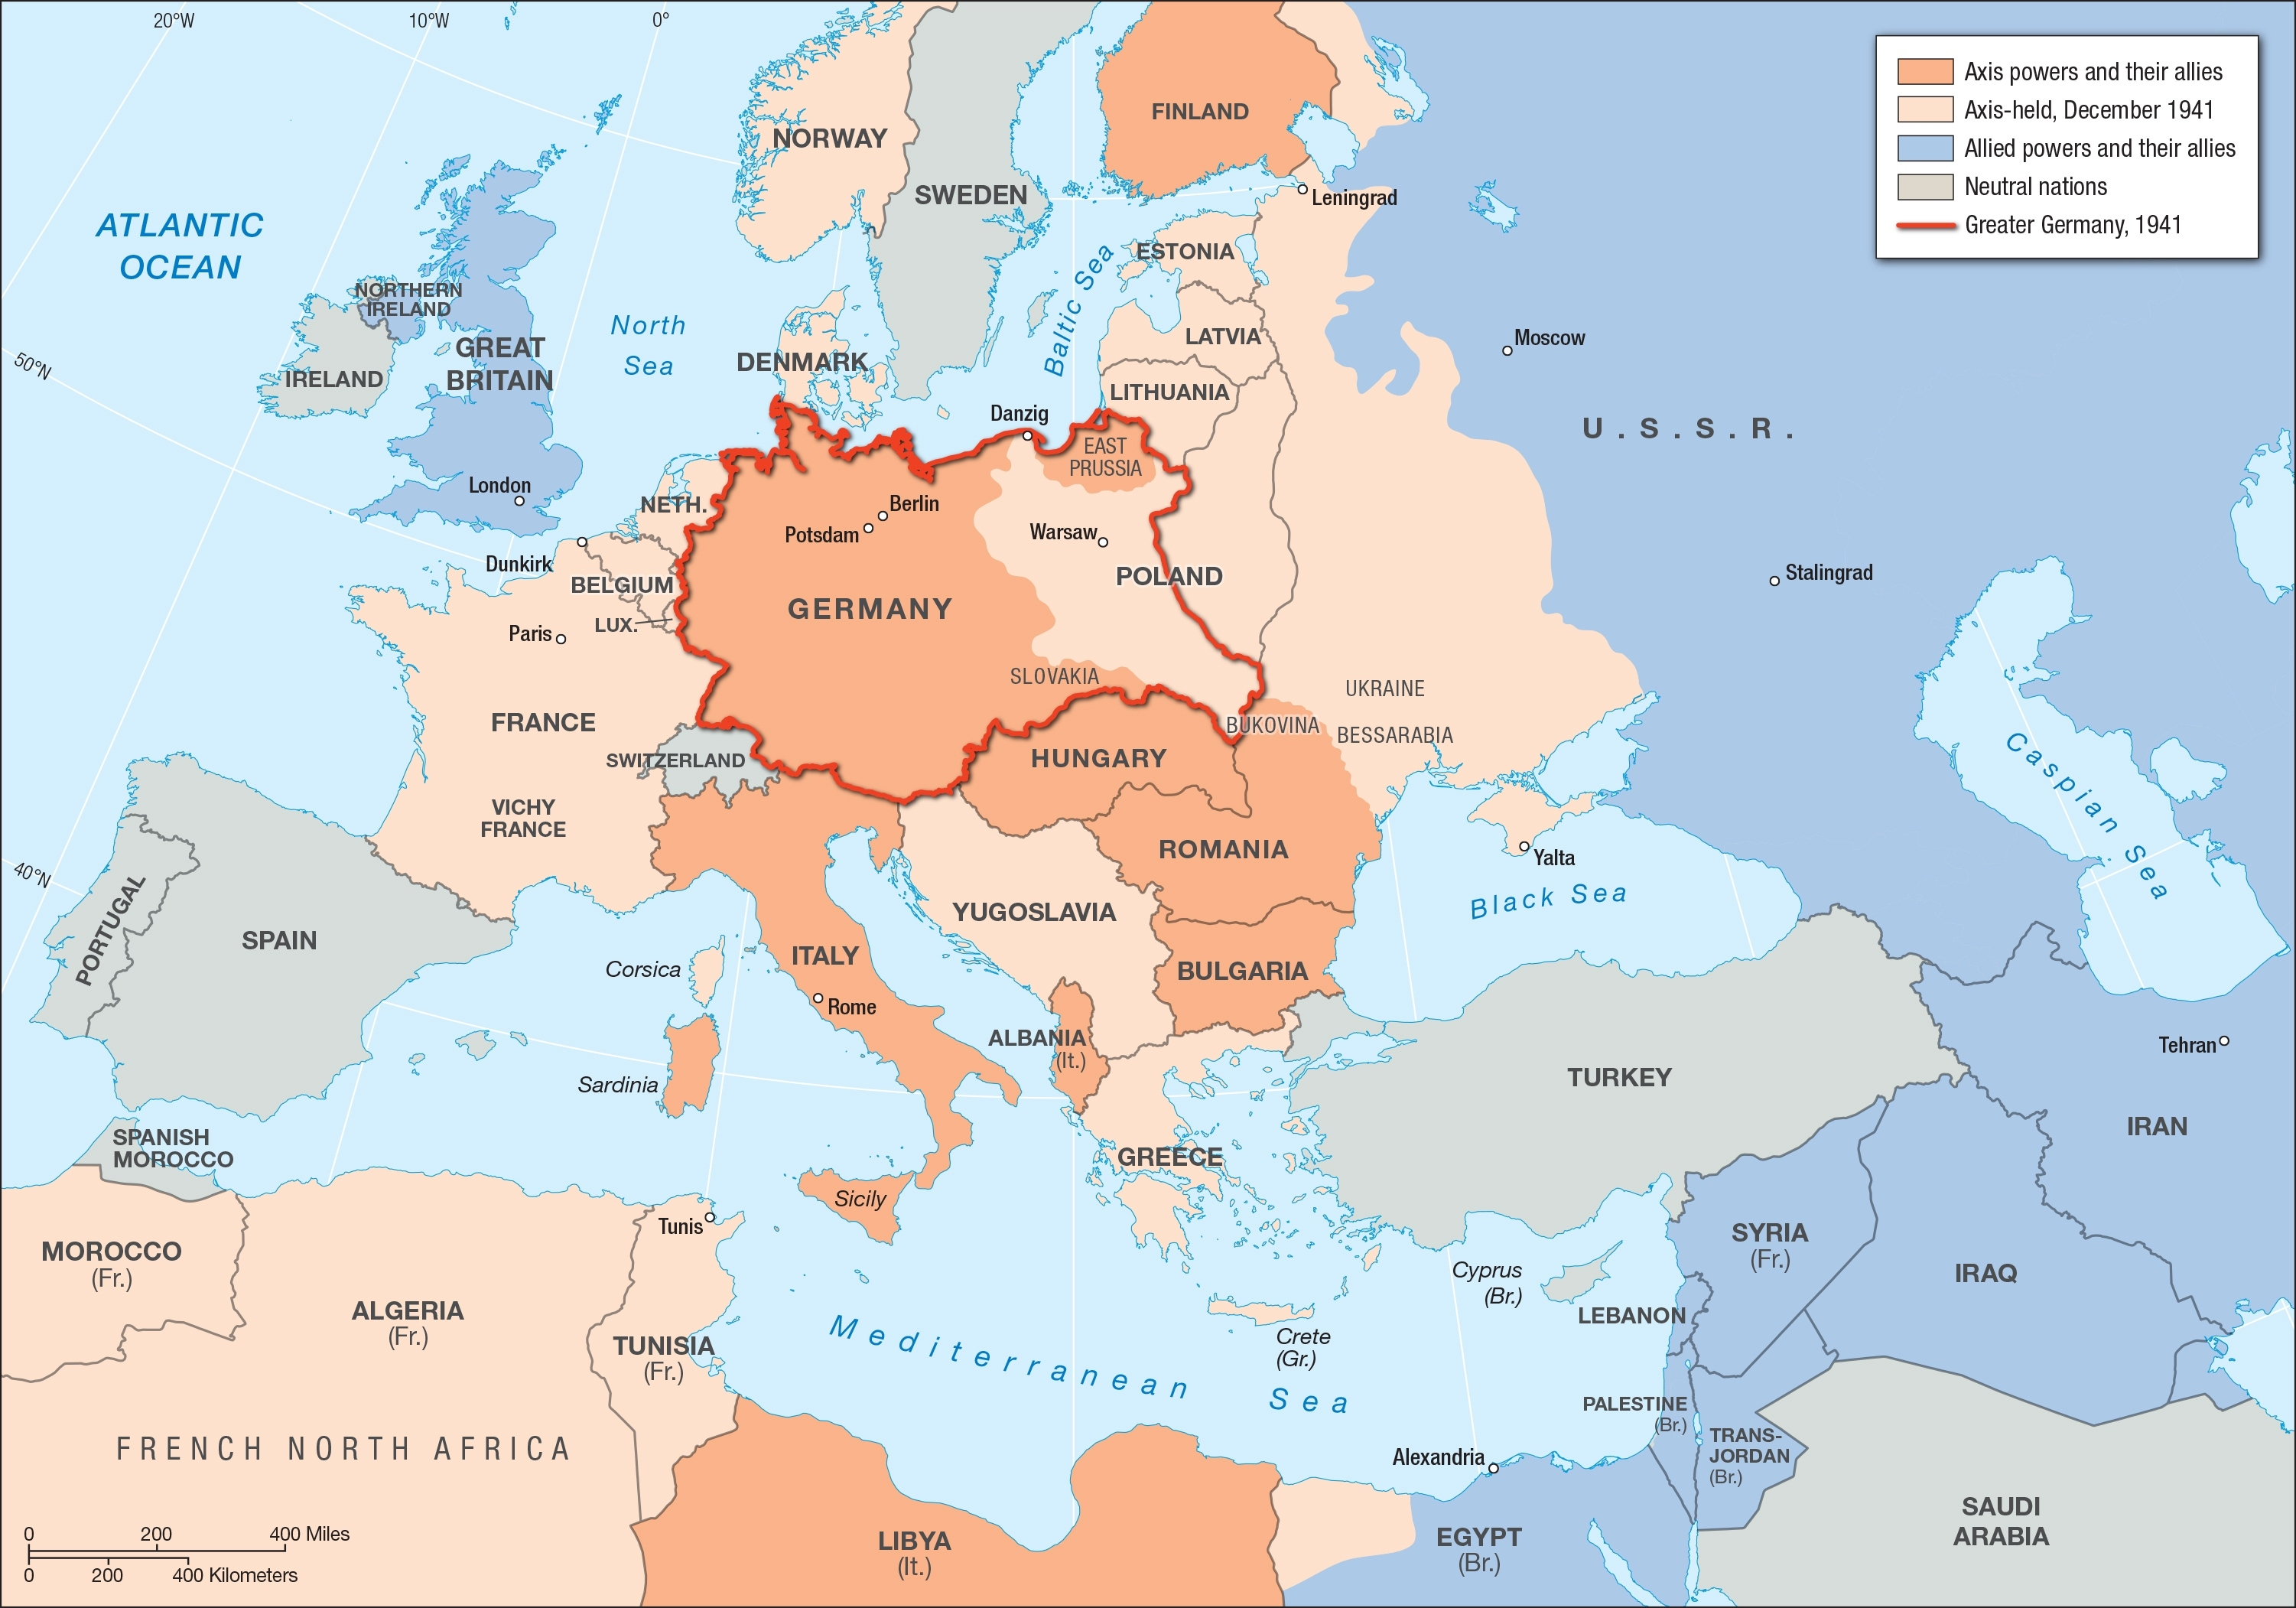 Europe And The Middle East, 1941 | Facing History And Ourselves intended for Map Of German Occupied Europe During Ww2